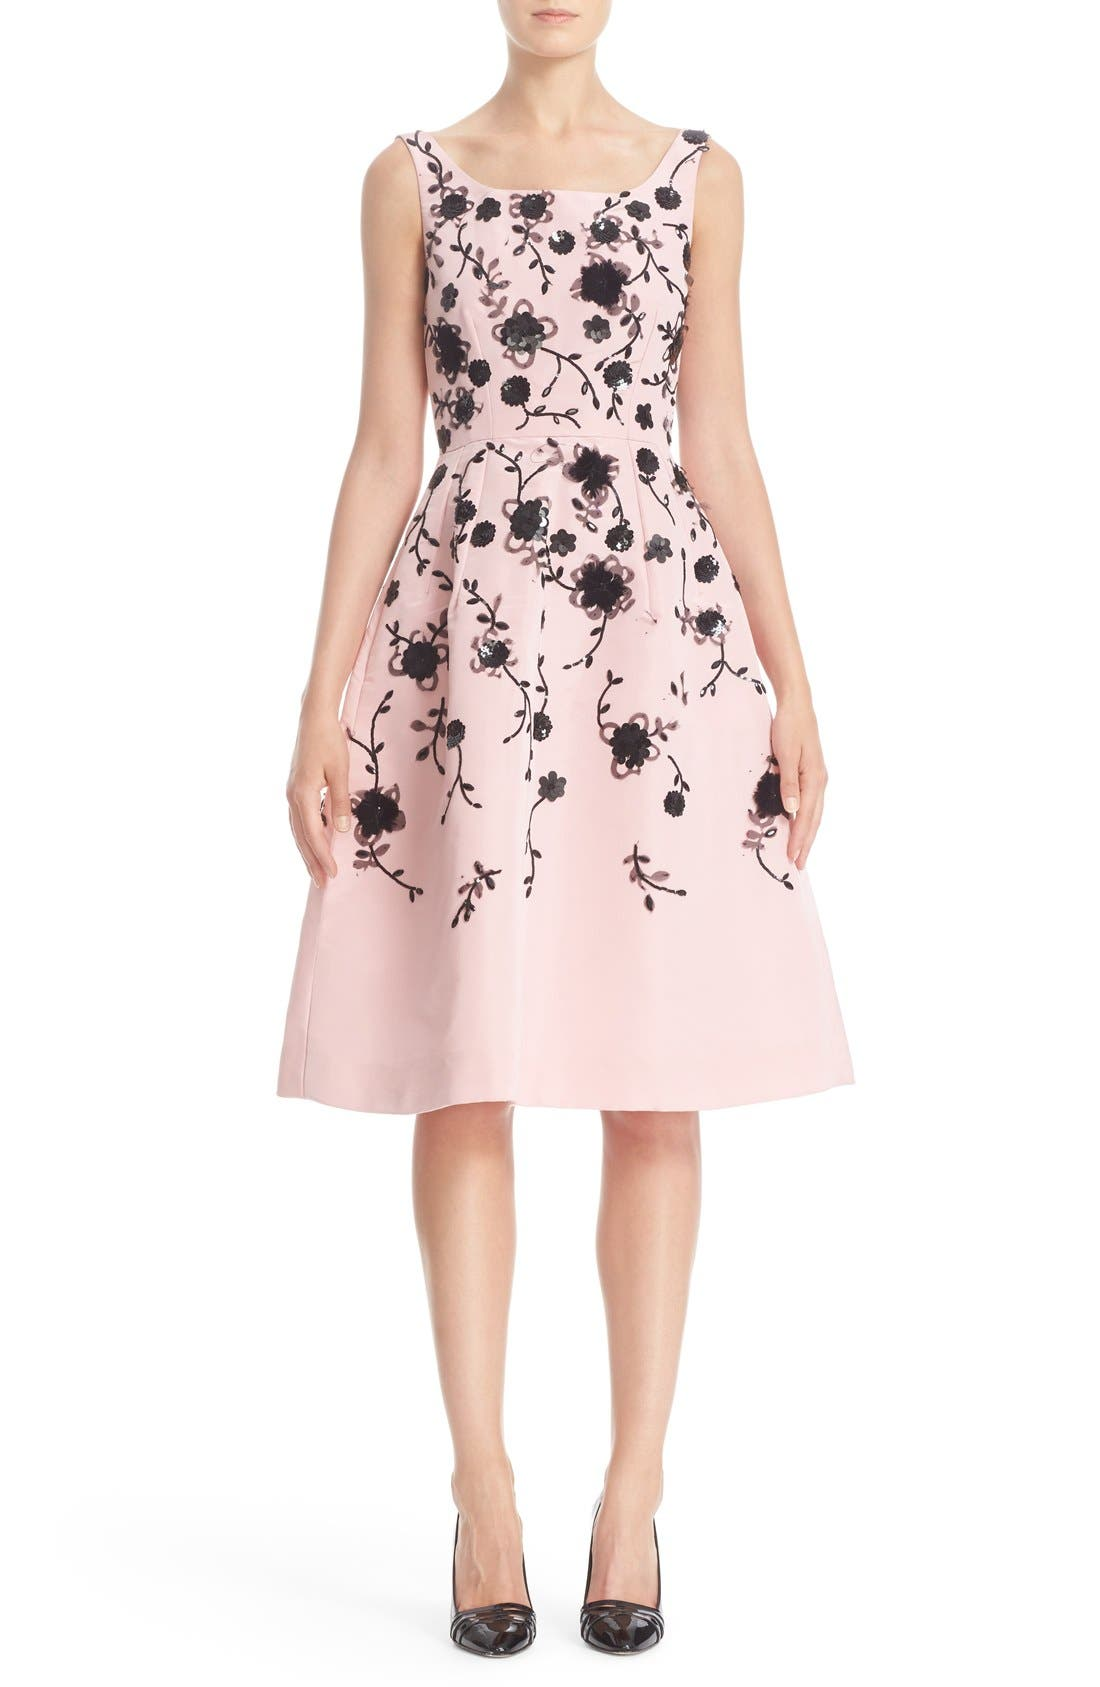 Alternate Image 1 Selected - Oscar de la Renta Floral Embroidered Silk Cocktail Dress